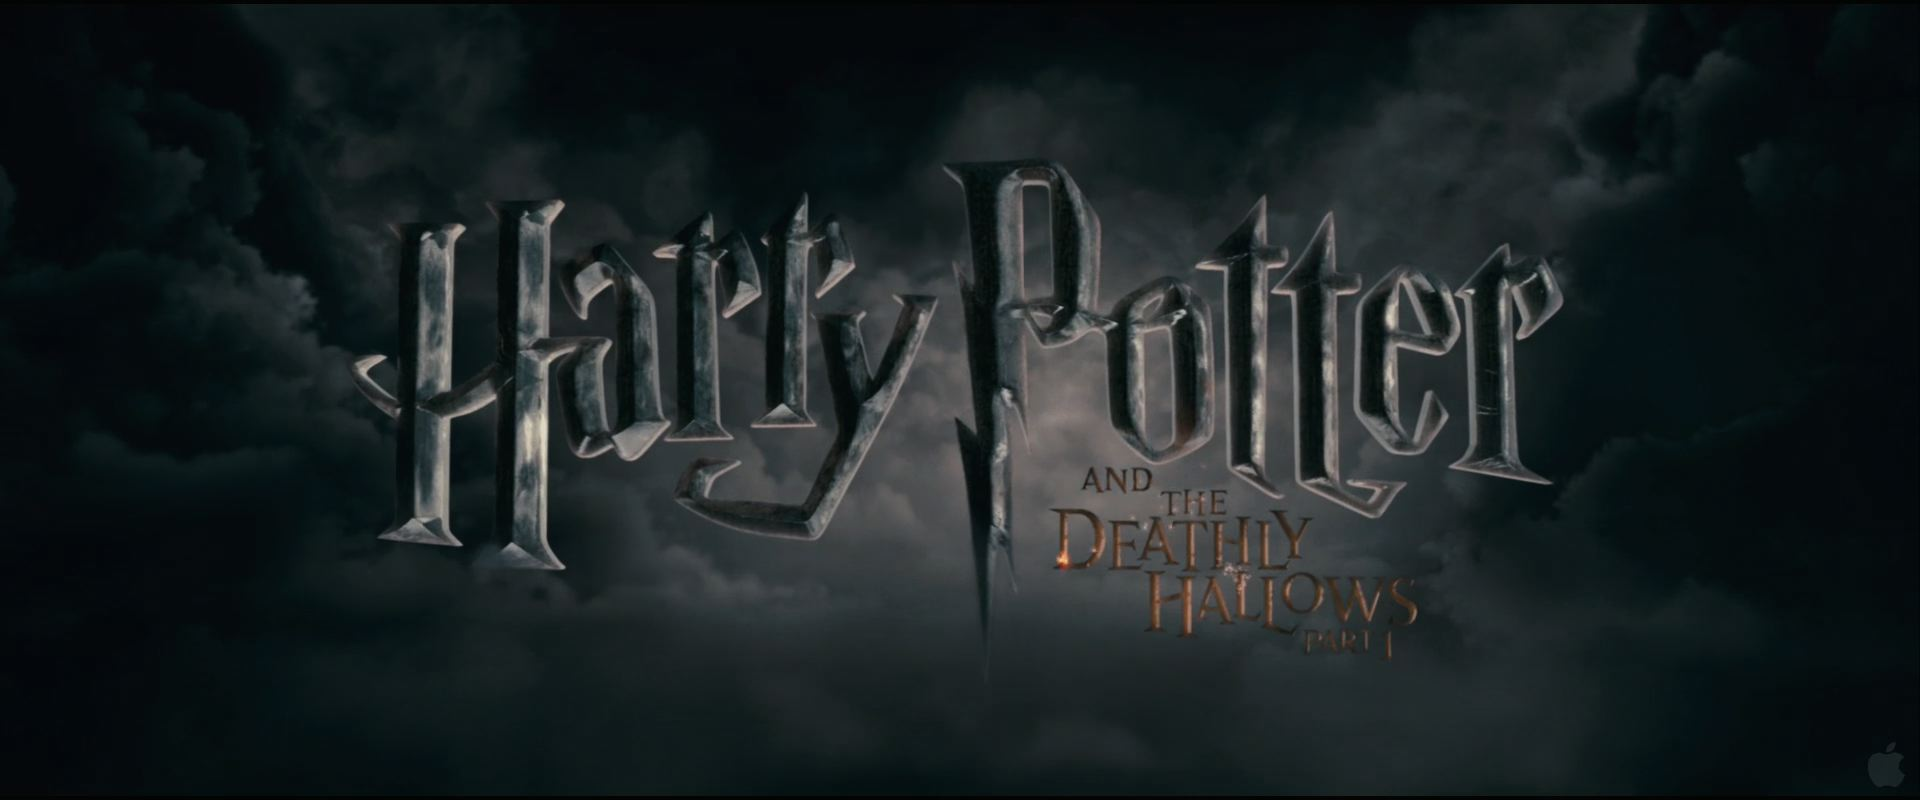 Good Wallpaper Harry Potter Good - Harry-Potter-and-the-Deathly-Hallows-Logo-Wallpaper  Trends_866480.jpg